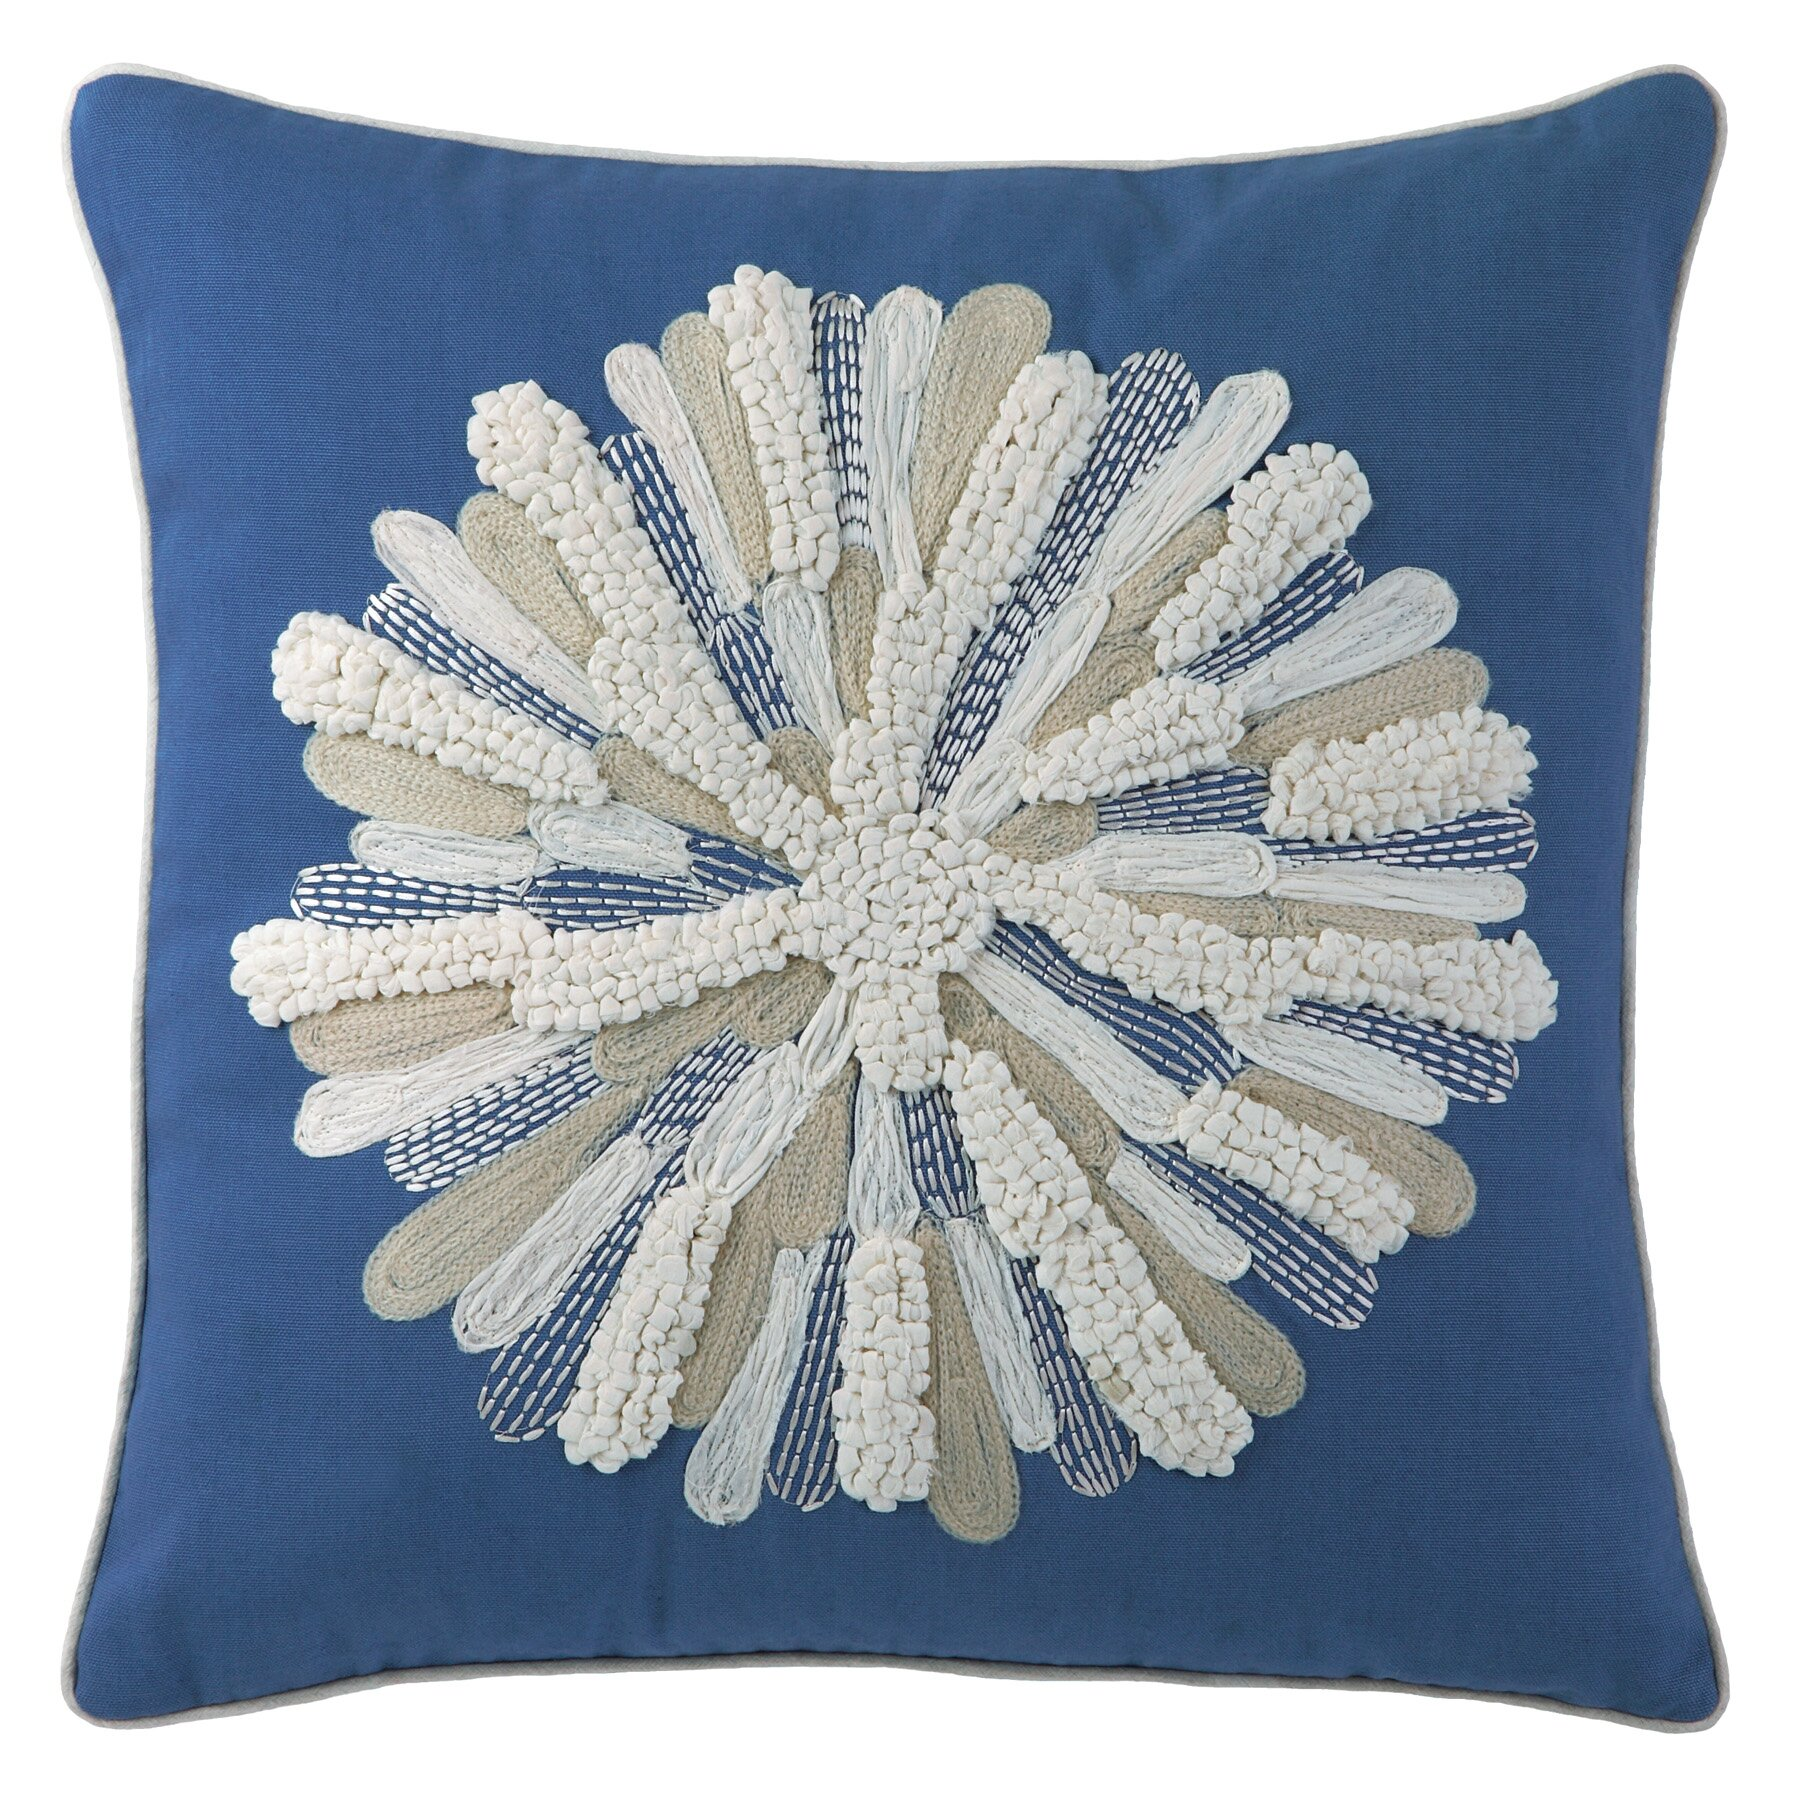 Wayfair Blue Decorative Pillows : Company C Asters Cotton Throw Pillow & Reviews Wayfair